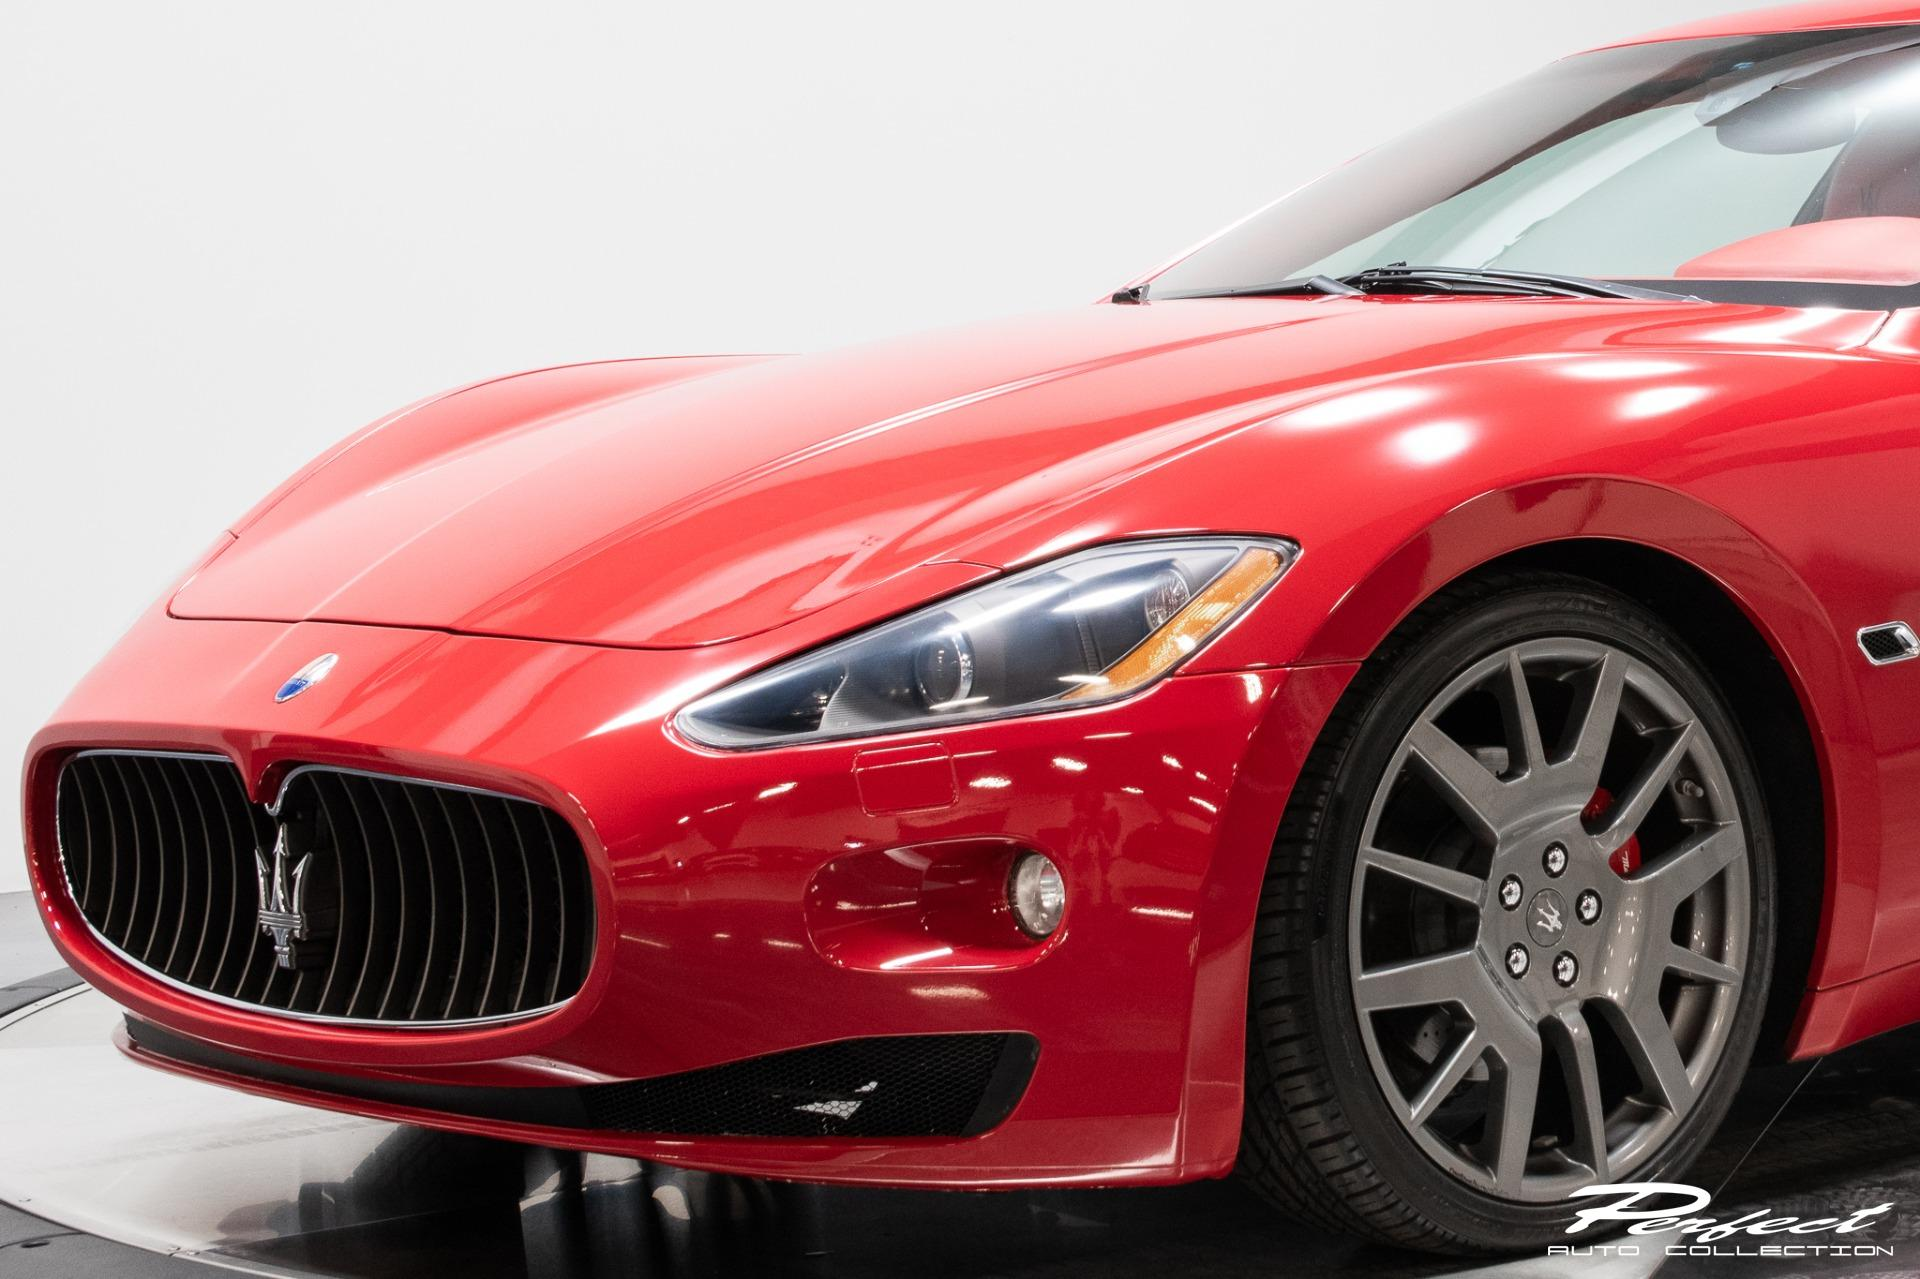 Used 2008 Maserati GranTurismo Base for sale $31,293 at Perfect Auto Collection in Akron OH 44310 4